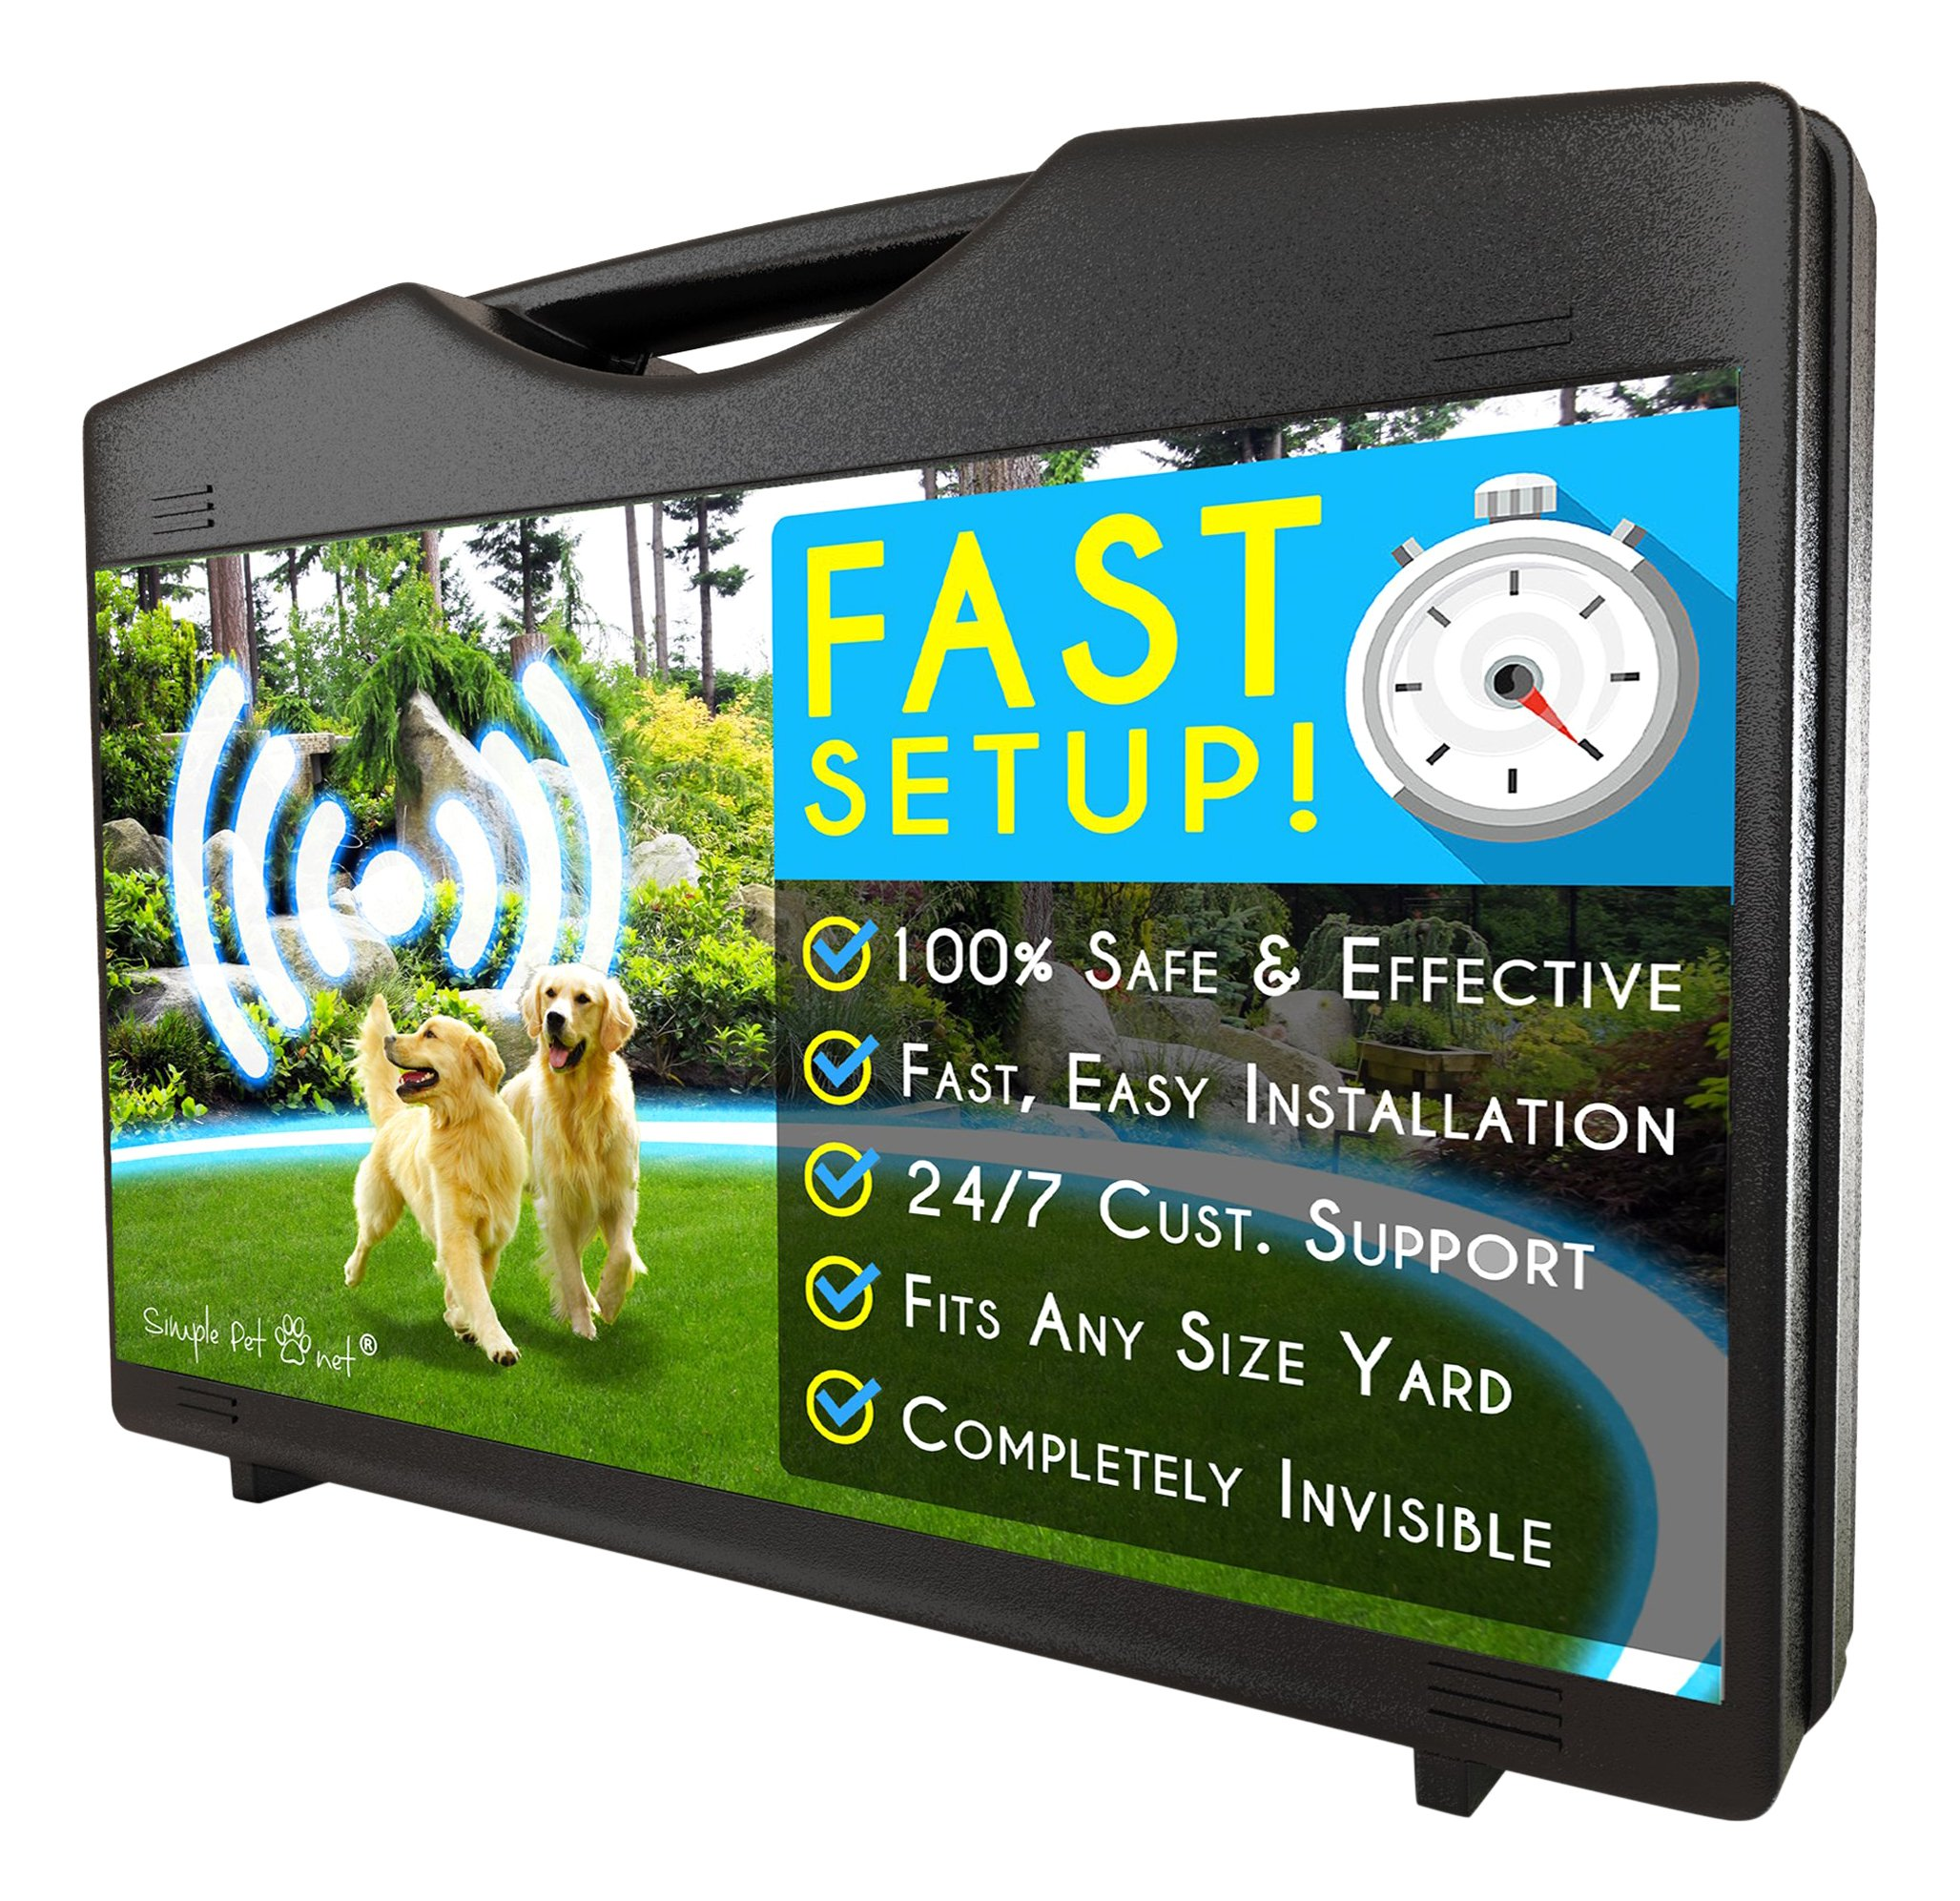 Simple Pet Simple Pet Wireless Electric Dog Fence